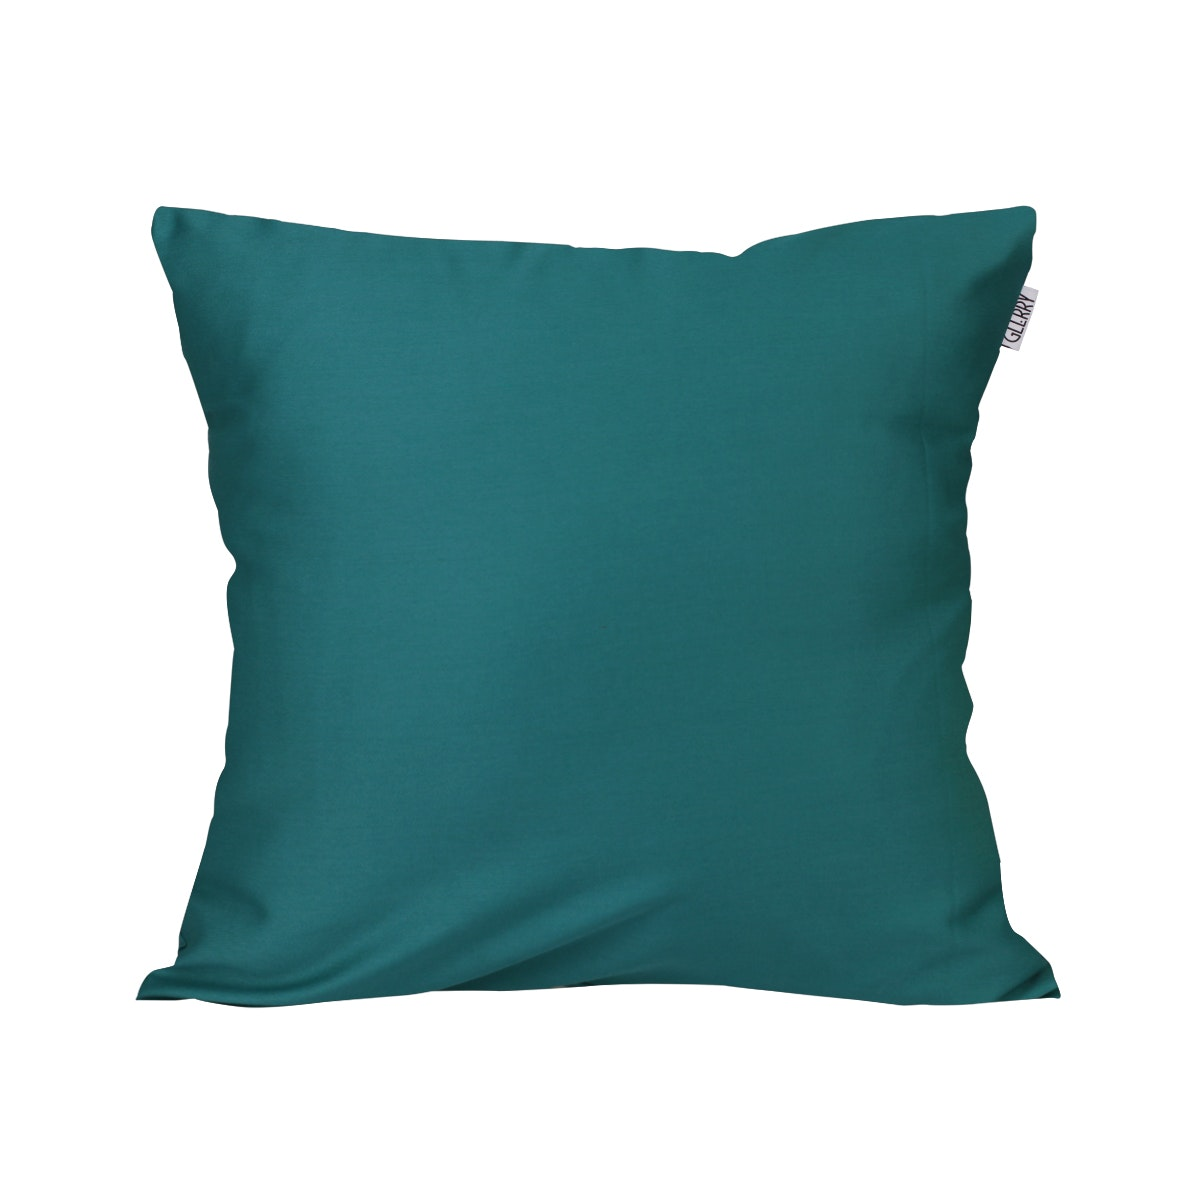 Glerry Home Decor Mint Cushion 40x40cm